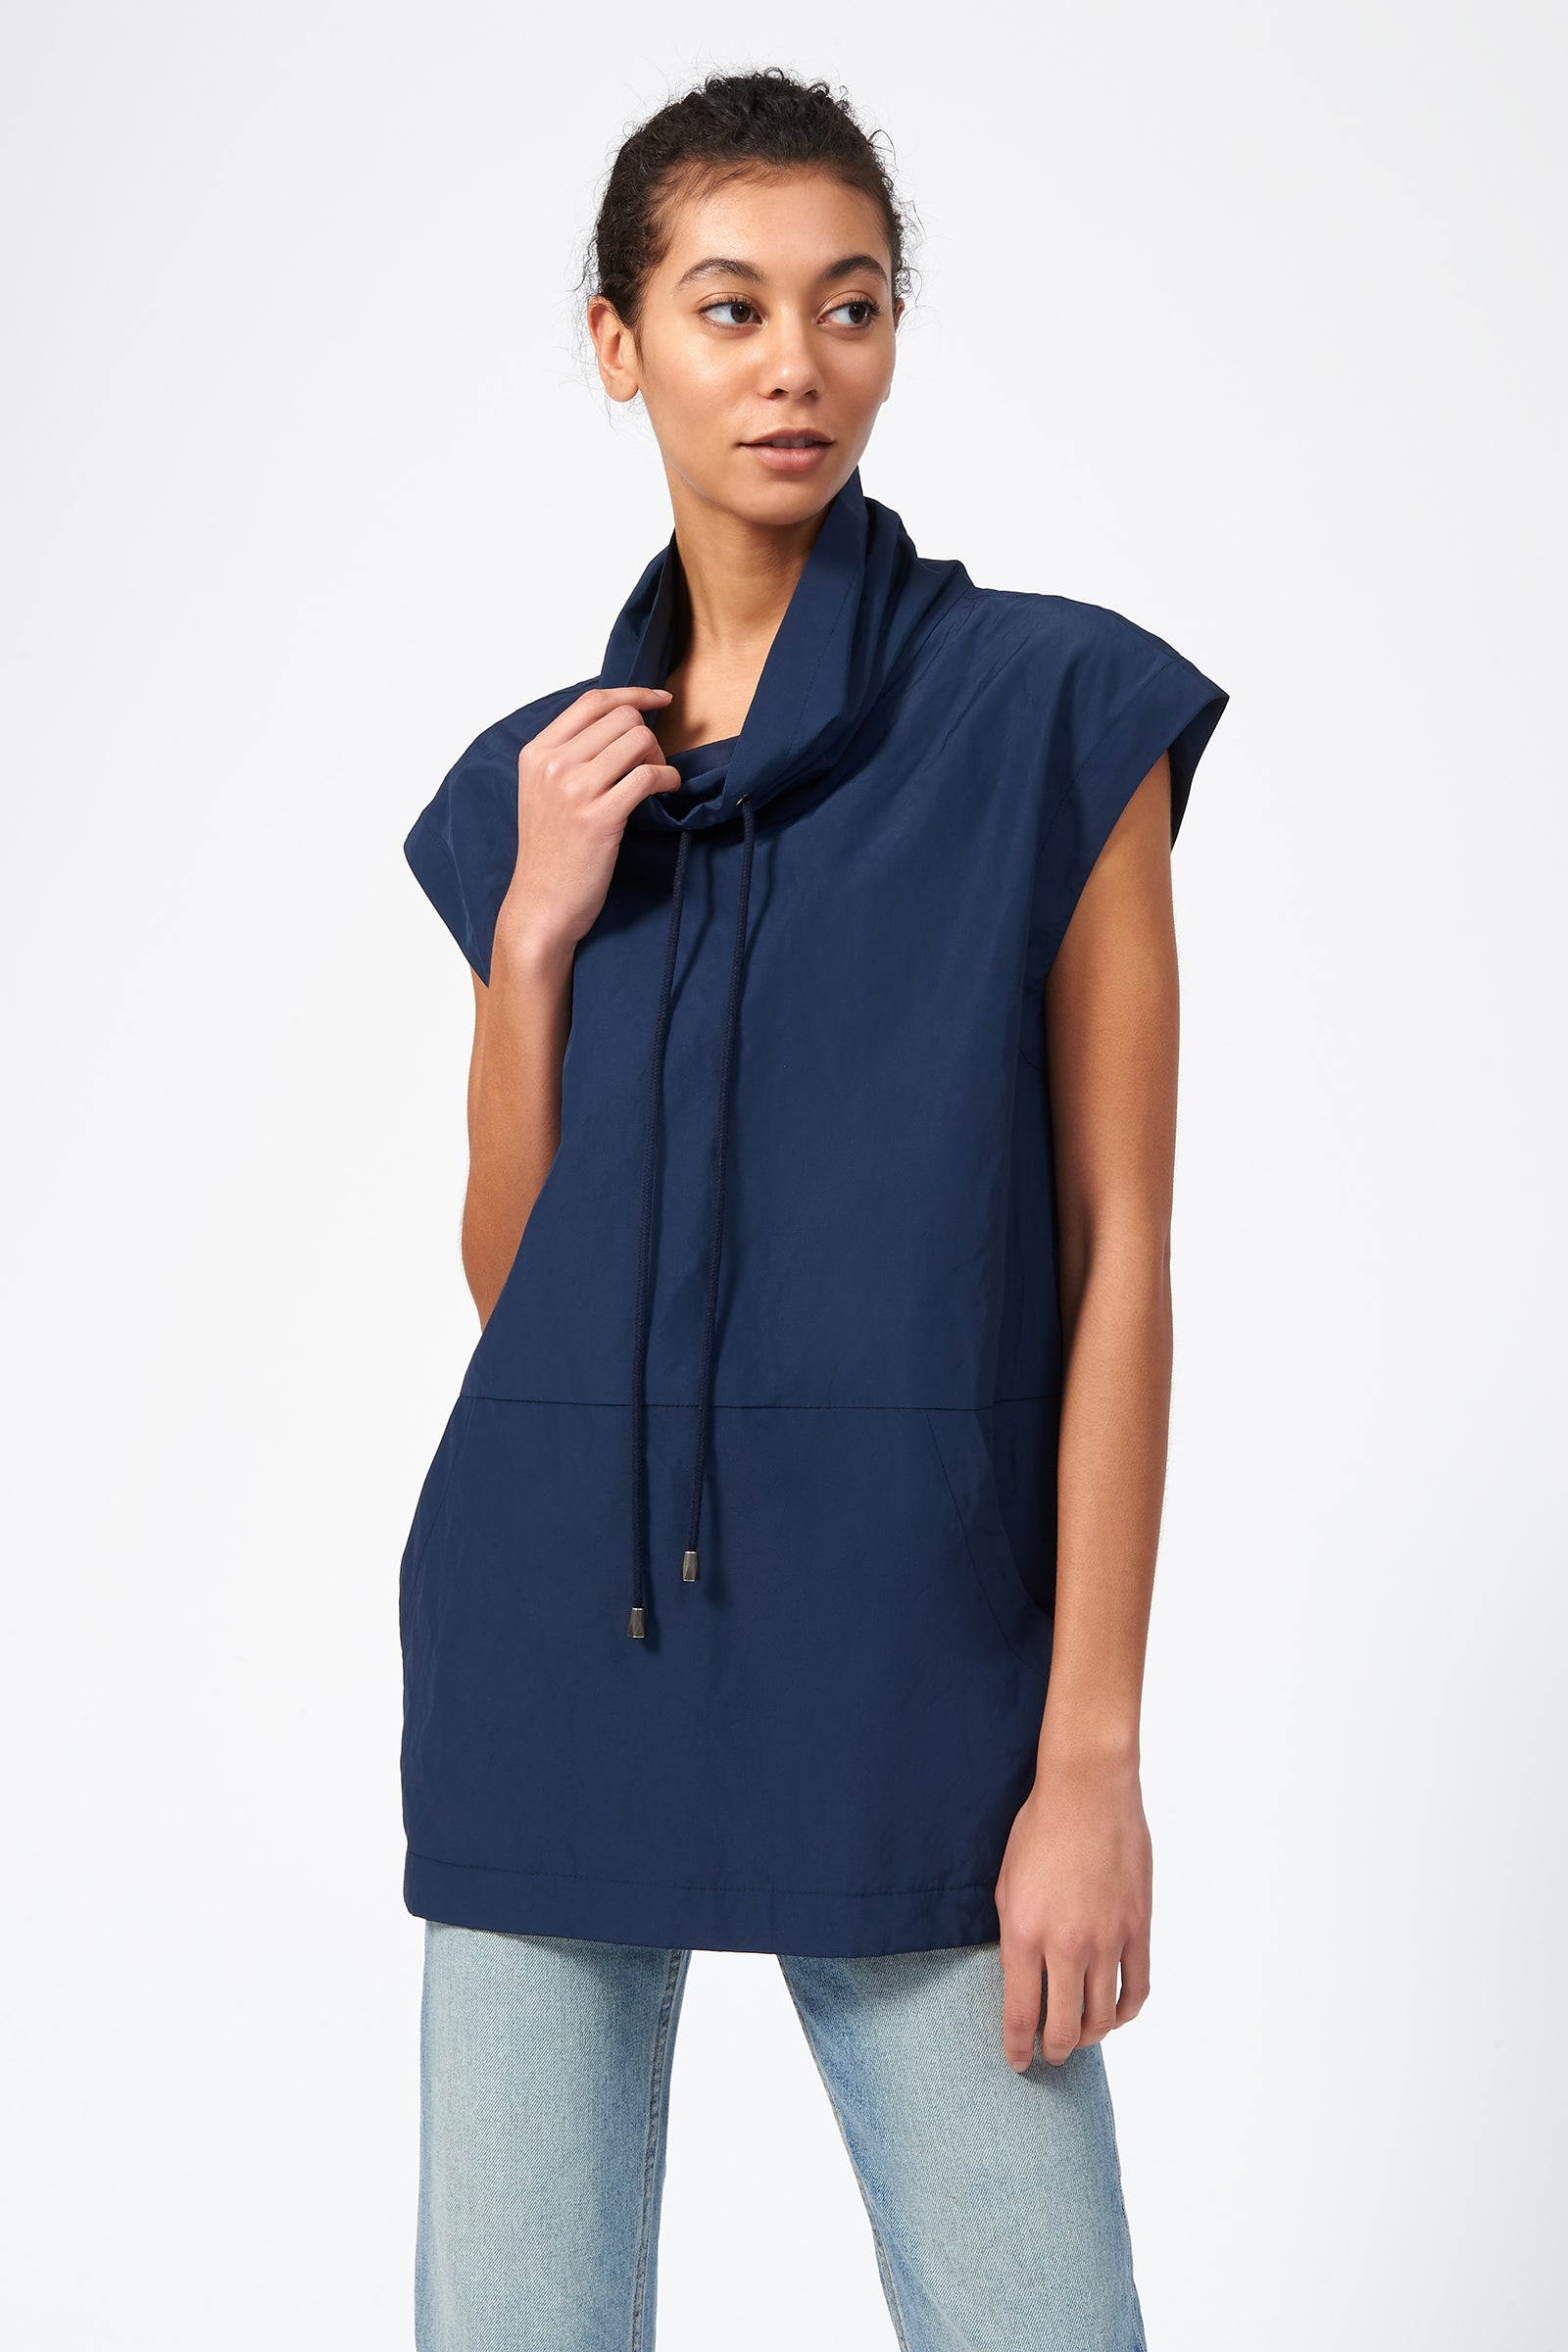 Kal Rieman Drawstring Pullover in Navy on Model Front View